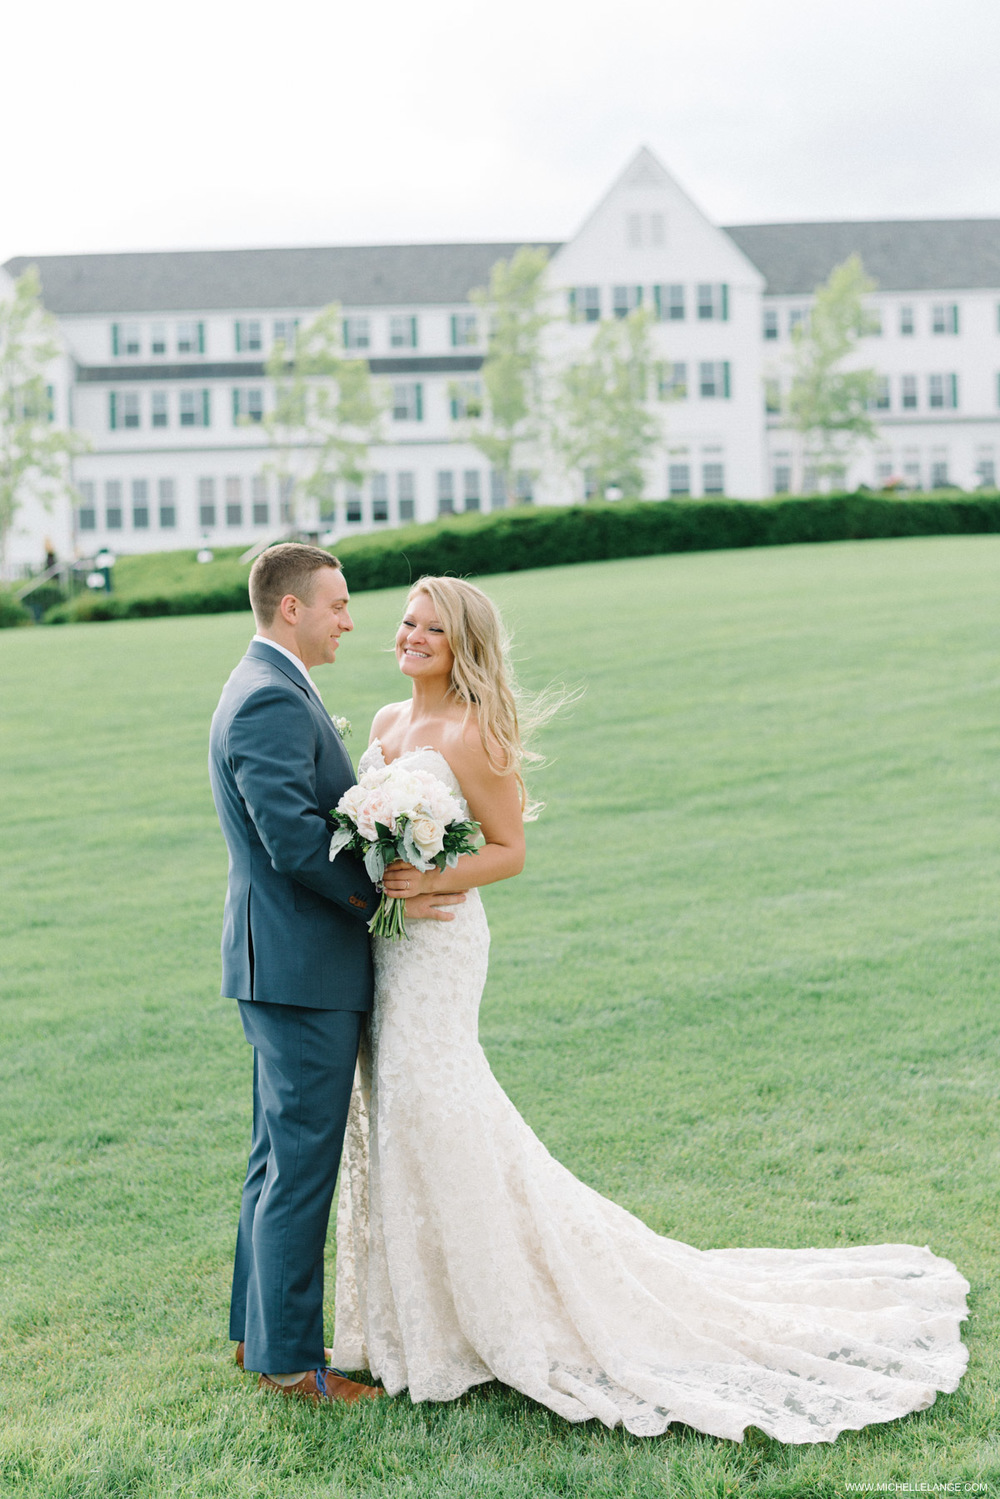 Sagamore Wedding by Michelle Lange Photography-21.jpg